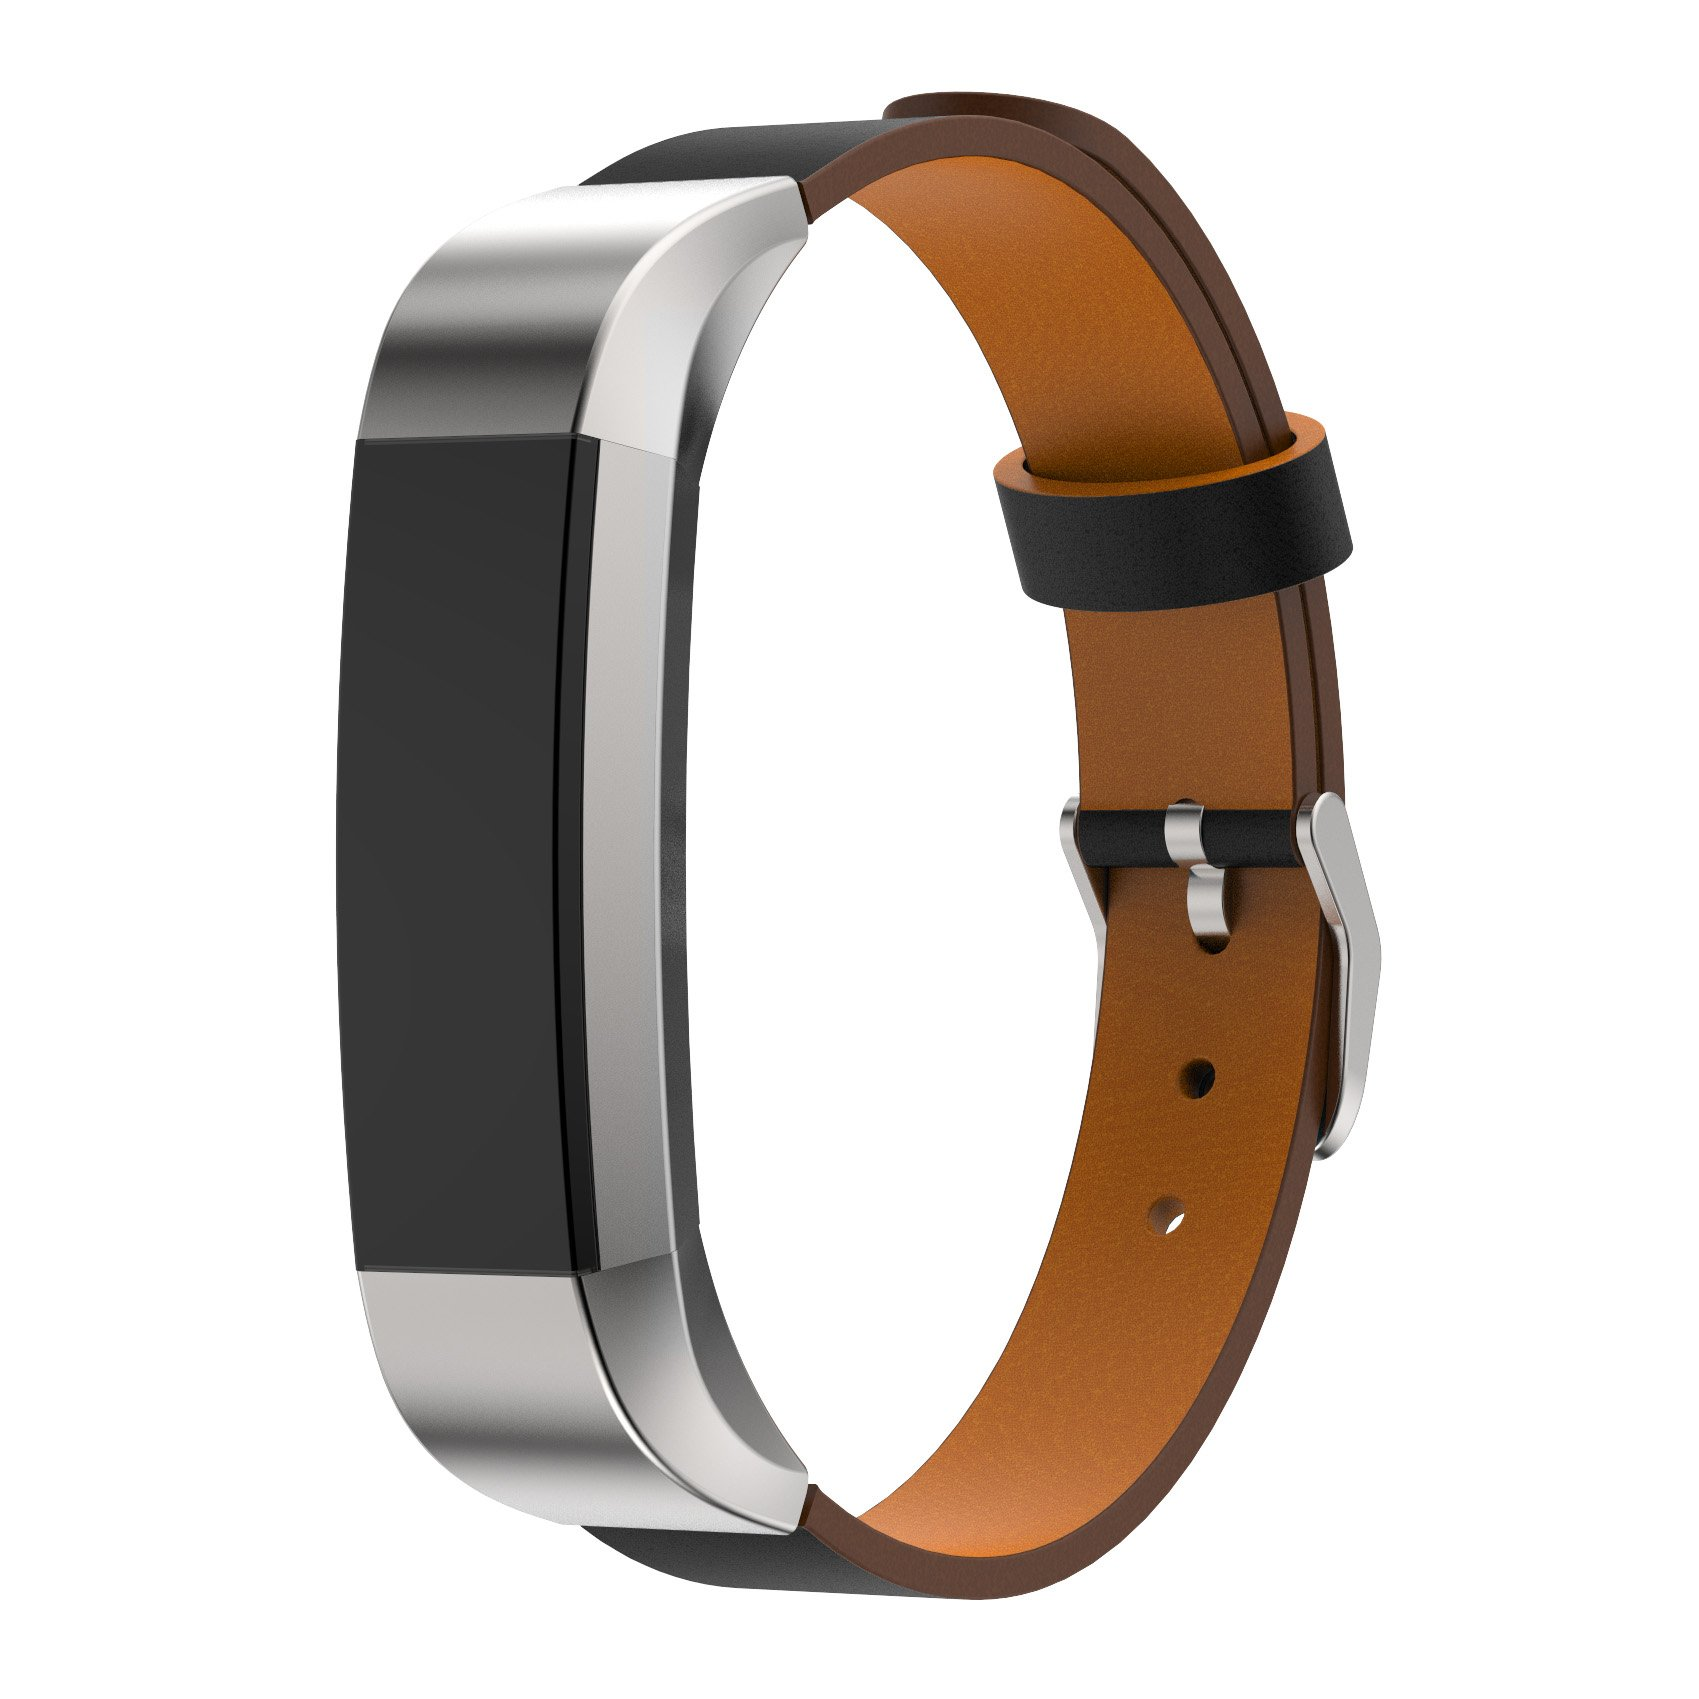 D.B.MOOD Replacement Genuine Leather Band Strap Bracelet for Fitbit Alta Tracker Black